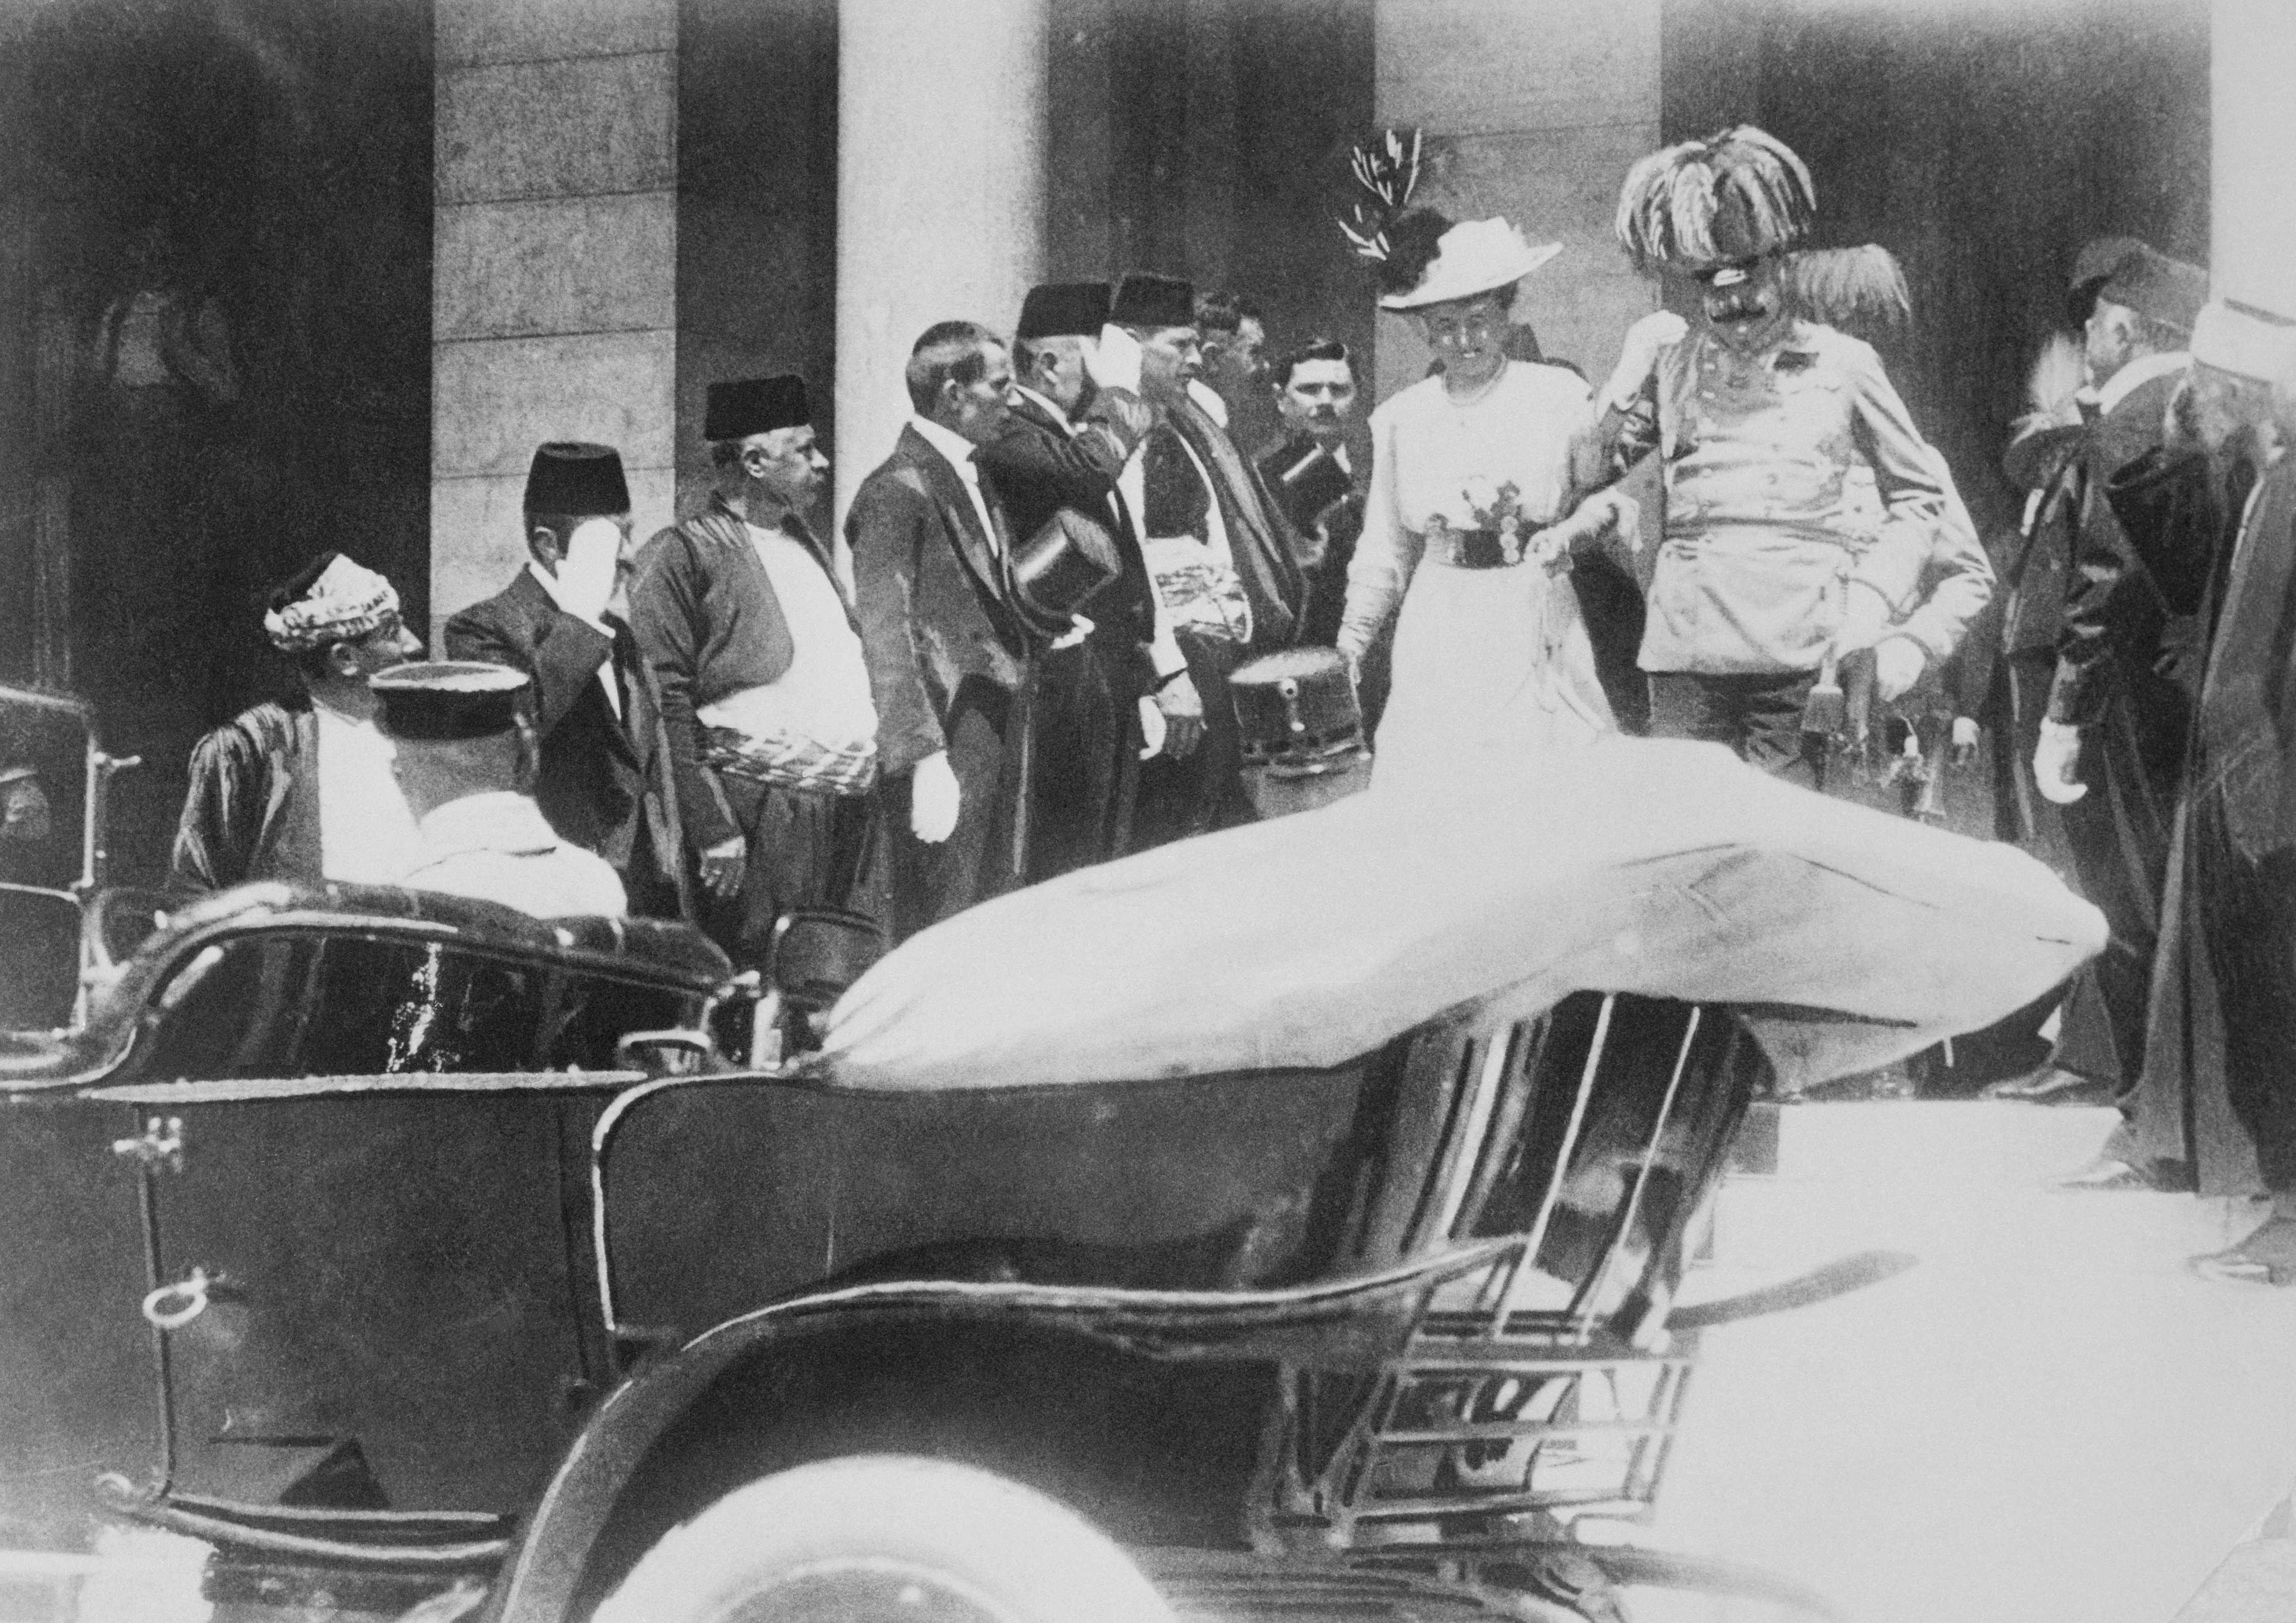 The assassination of Austrian crown prince Franz Ferdinand and his wife Sophie, both pictured here, triggered the start of the First World War. (Getty Images)